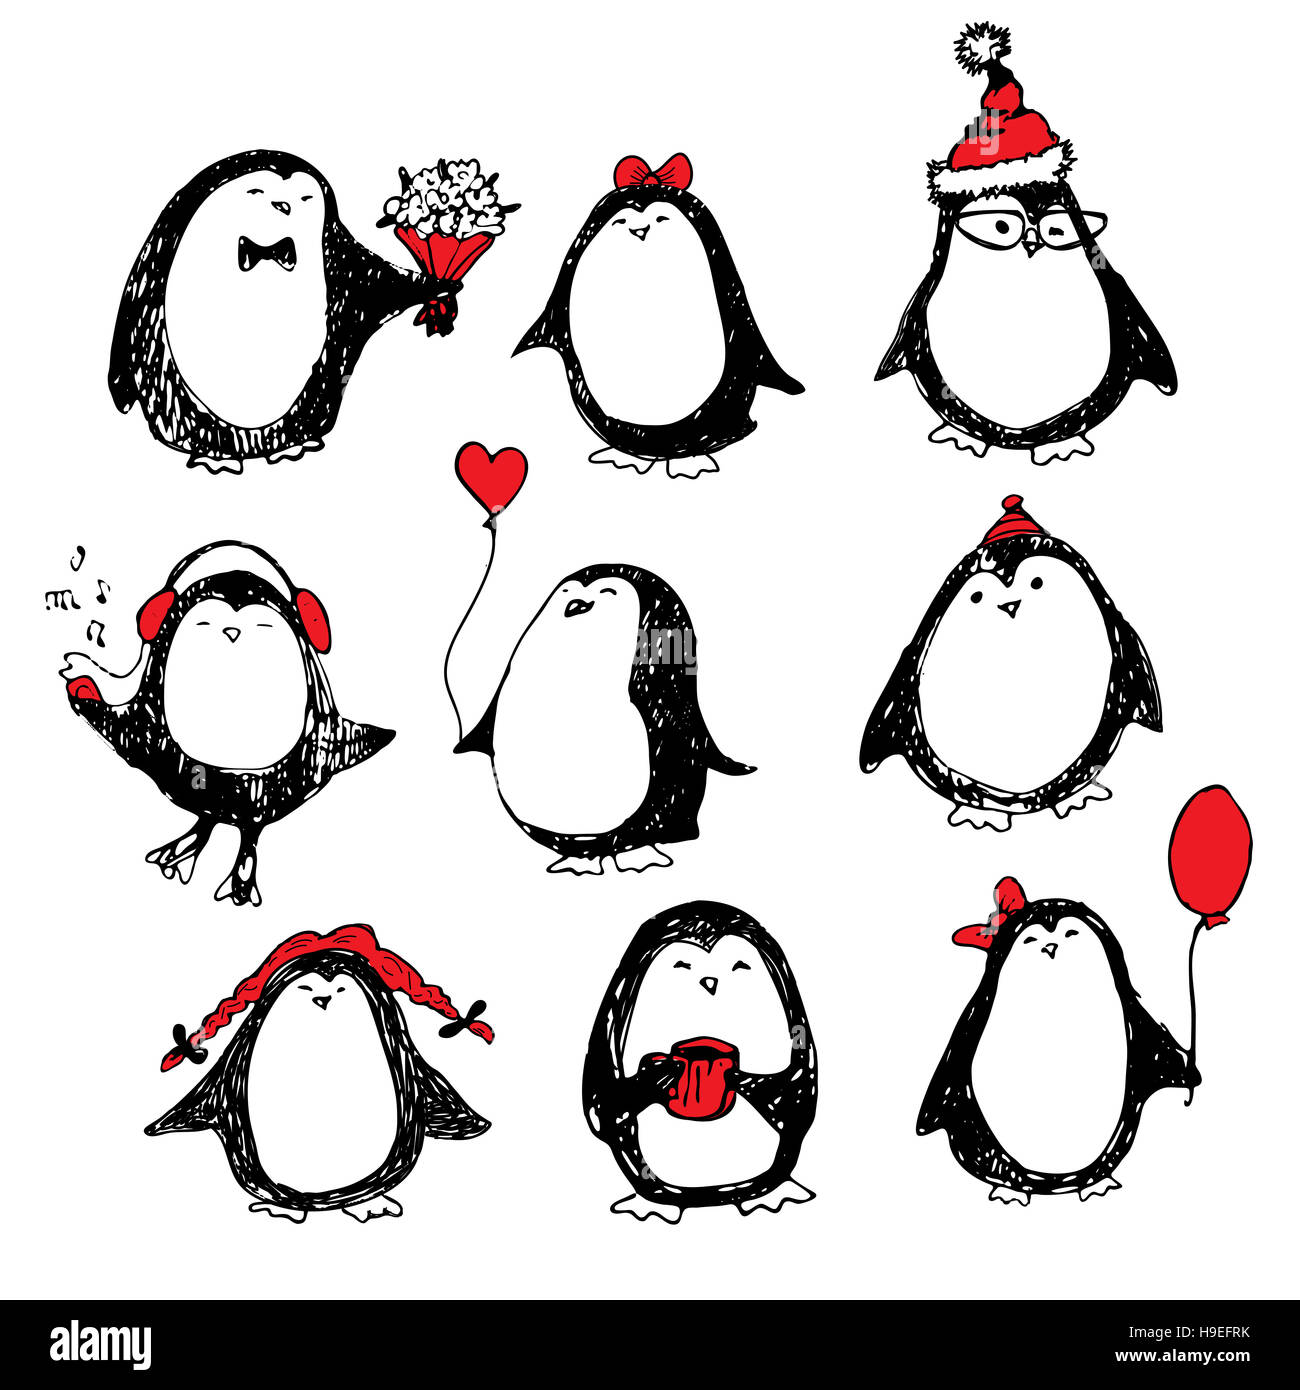 cute hand drawn penguins set merry christmas greetings stock photo